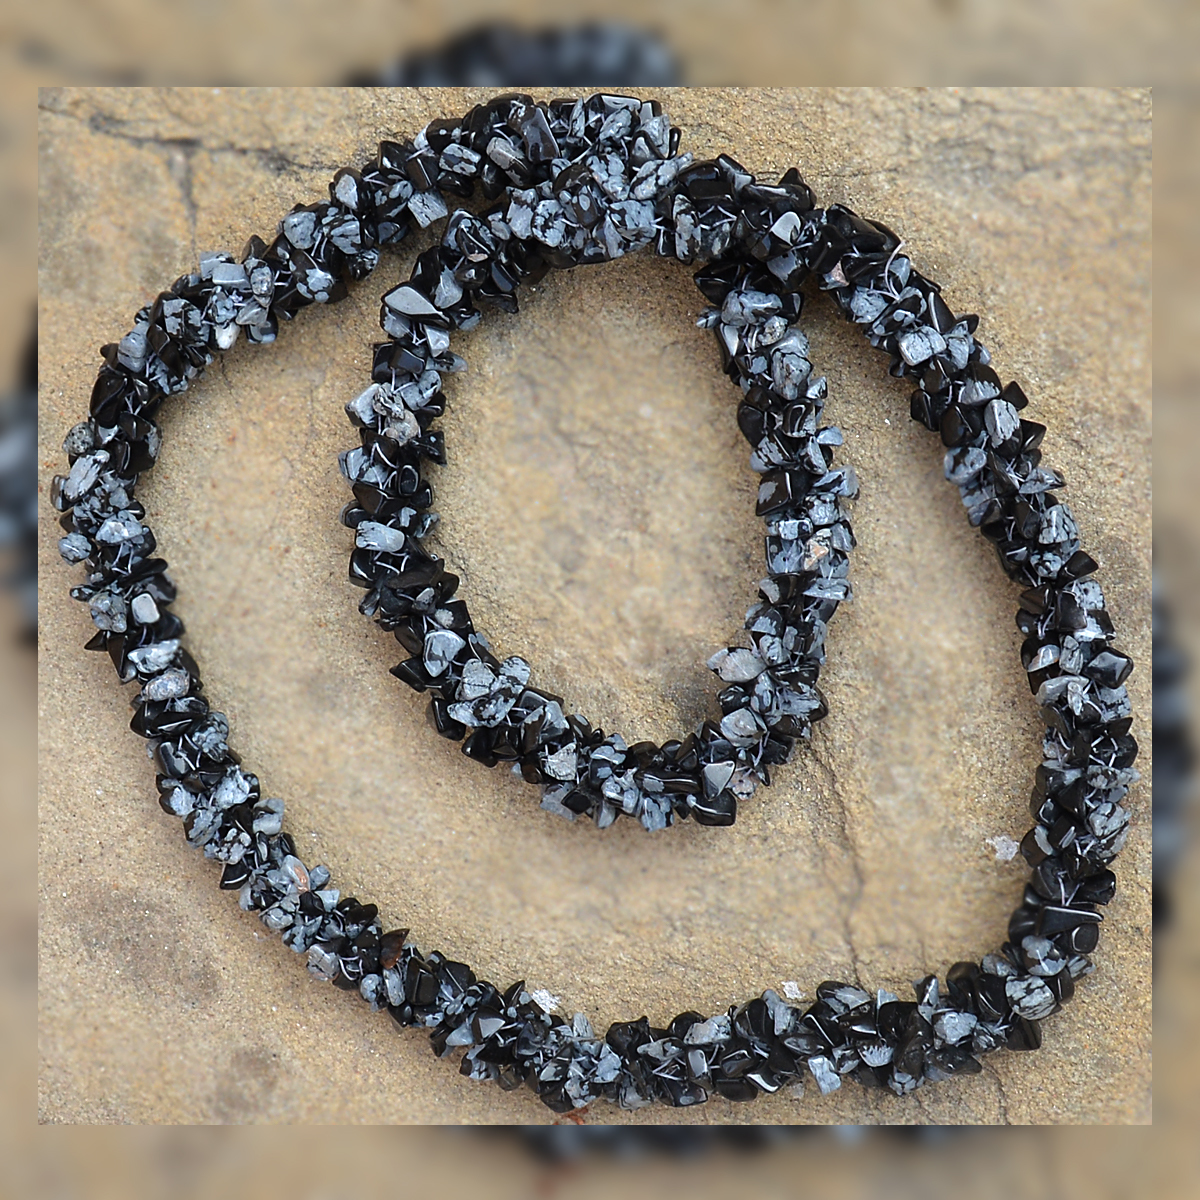 Snowflake Obsidian Gemstone Chips Necklace PG-156075